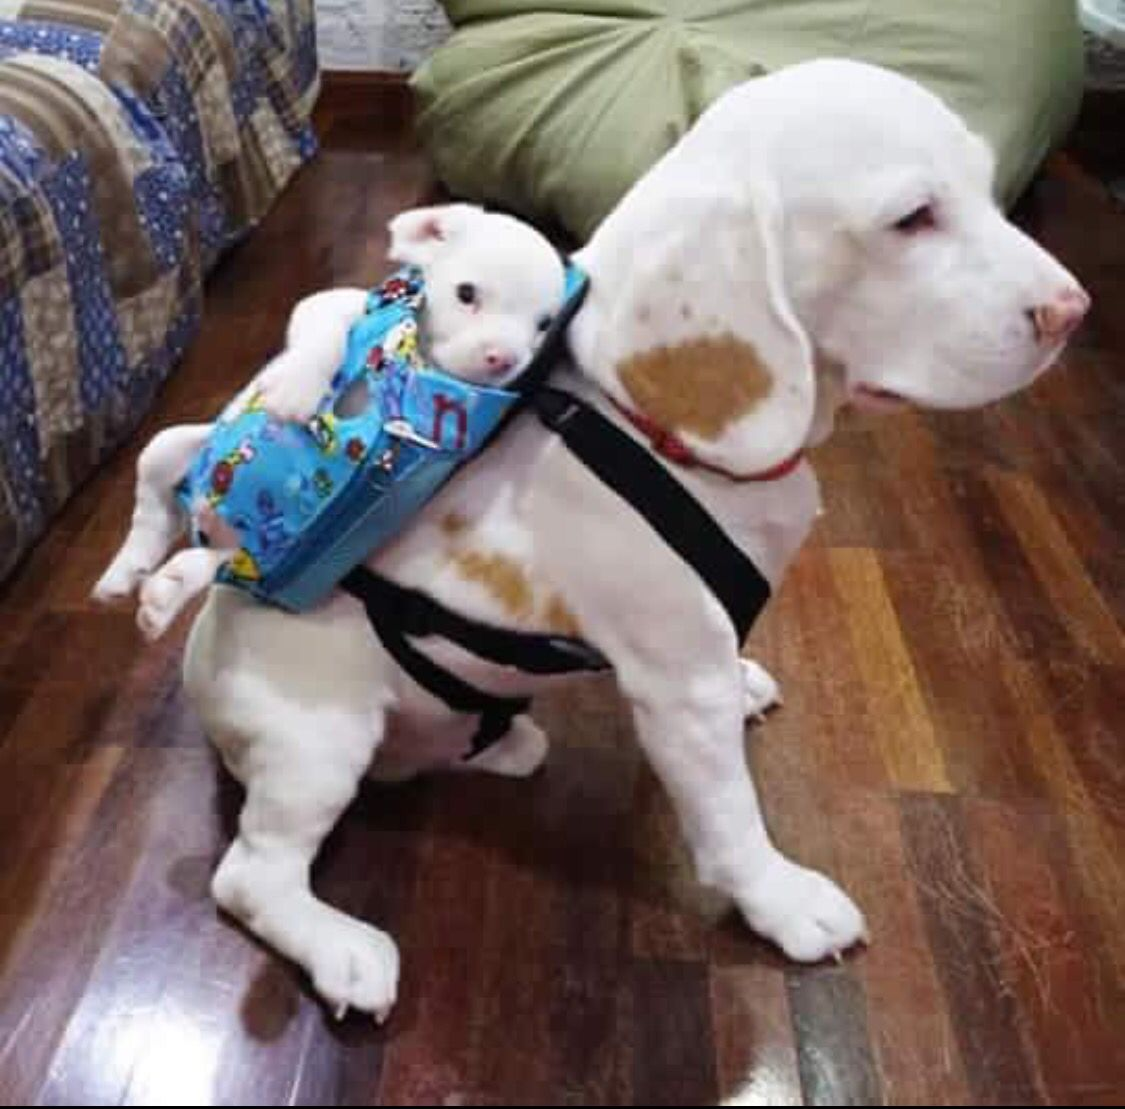 Unusually colored beagle and pup